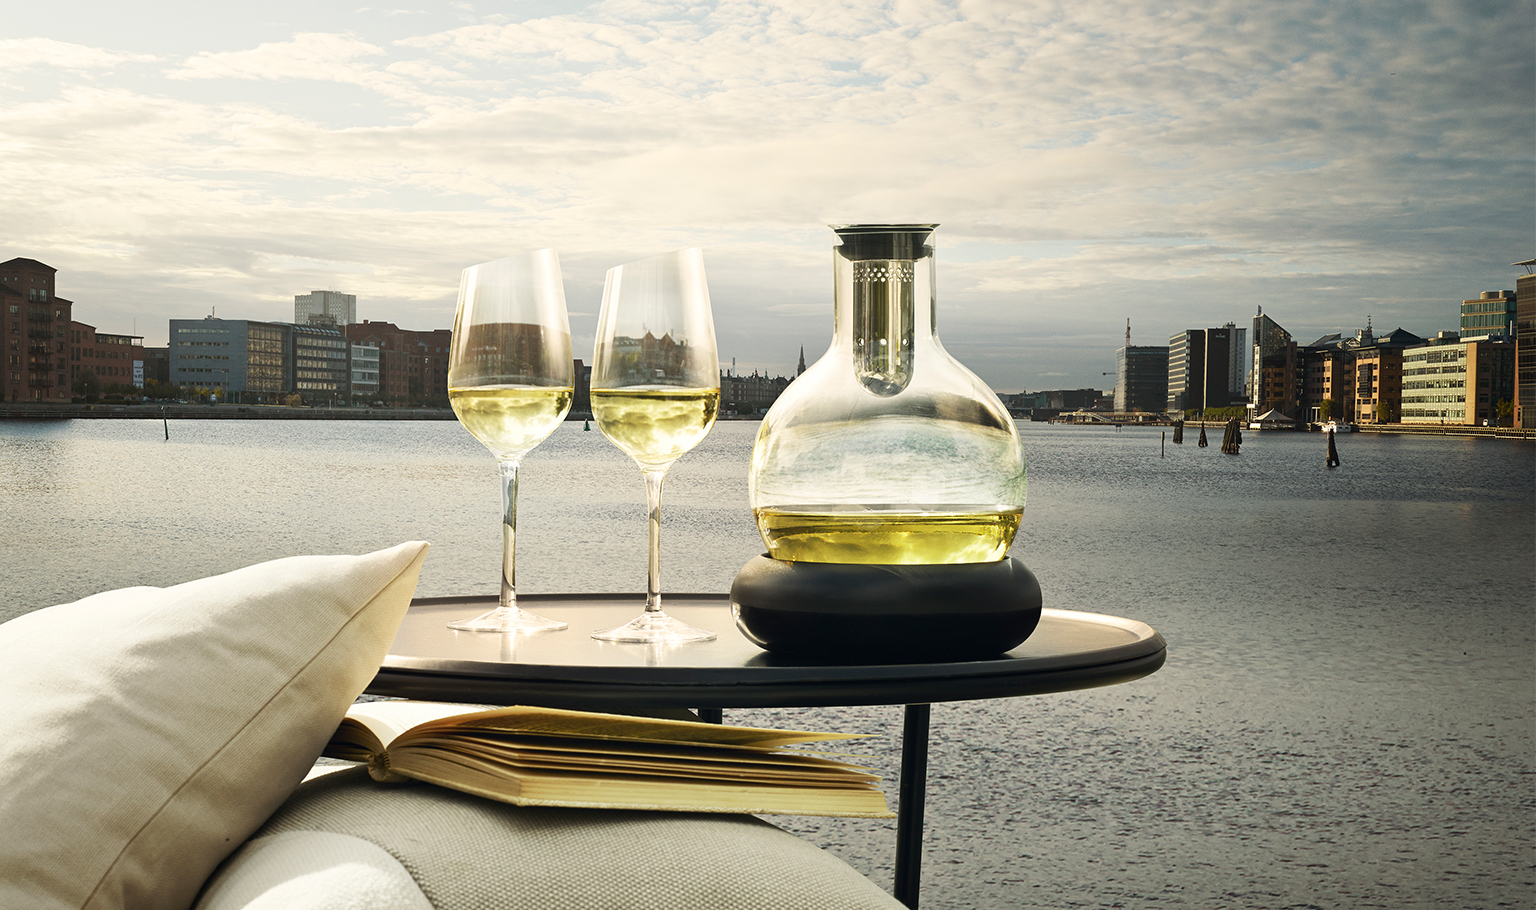 <p>Relax and enjoy the moment with a glass of chilled white wine. Keep the wine cool in the carafe with its integrated cooling element. </p>